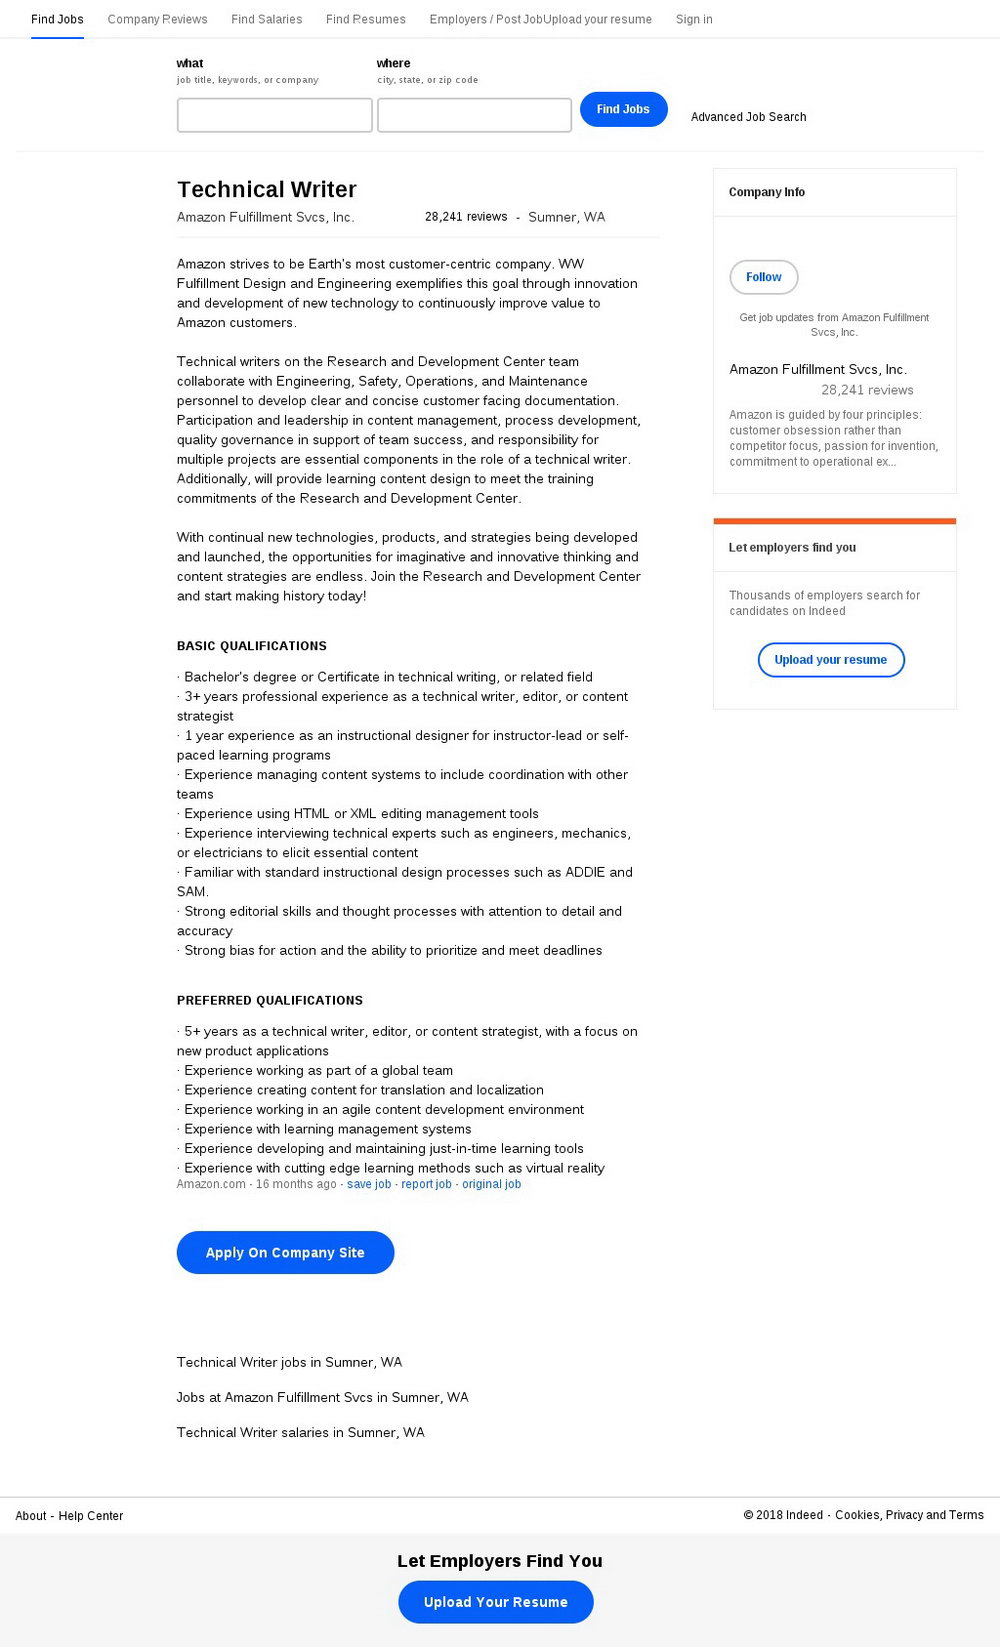 Amazon Fulfillment Job Application